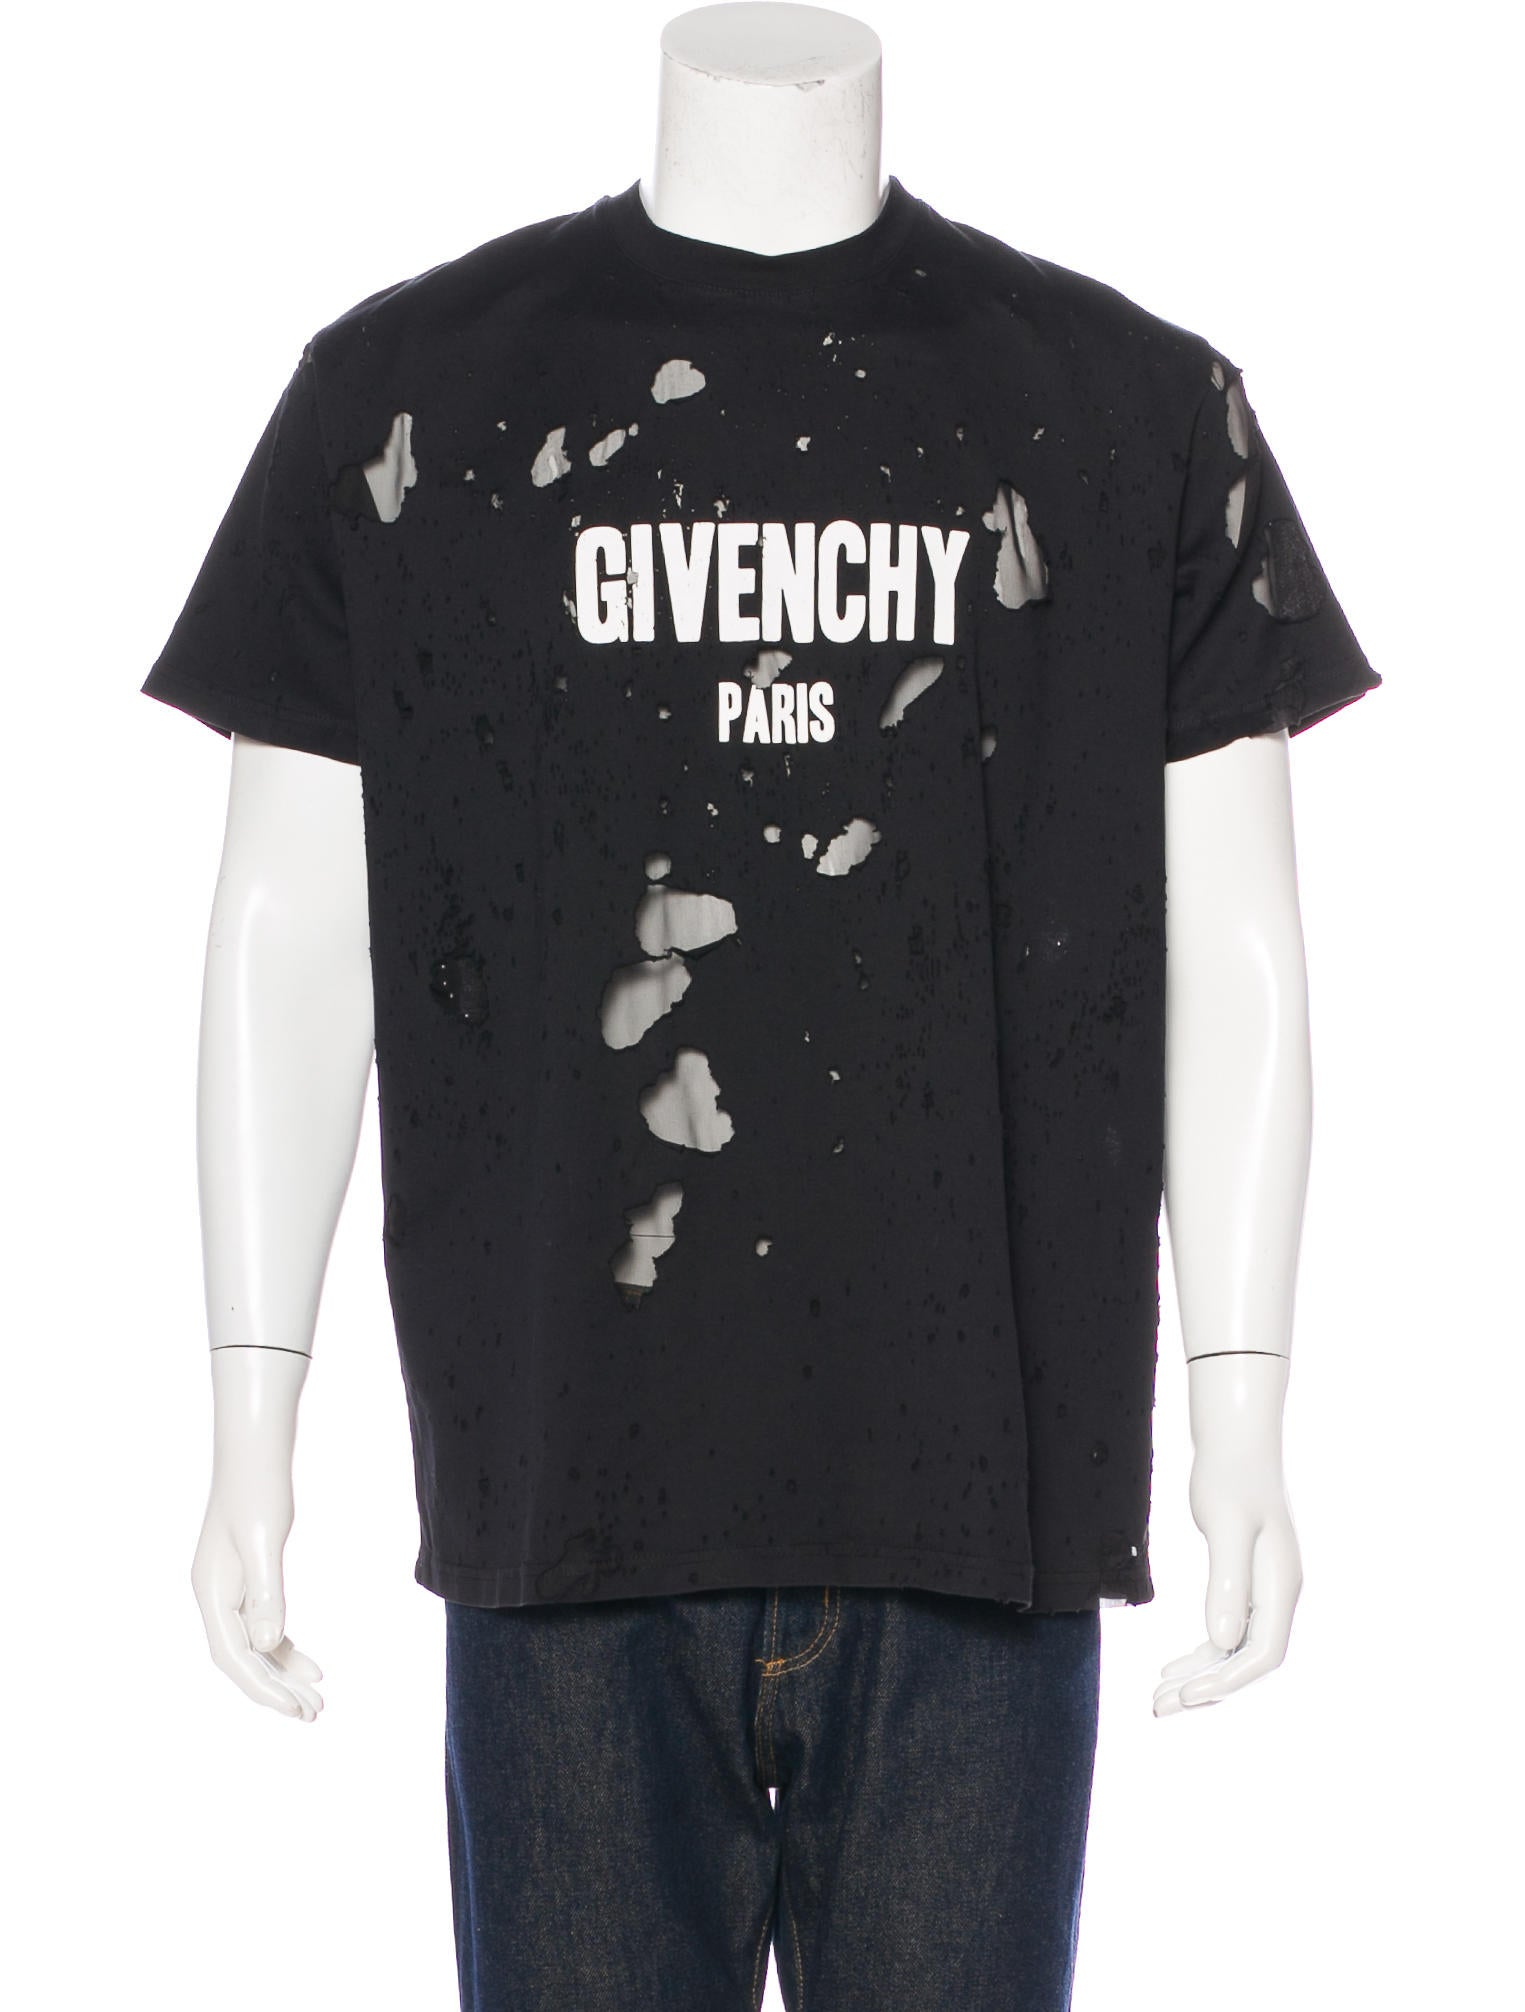 Givenchy 2017 Destroyed Logo T Shirt Clothing Giv44399: givenchy t shirt price